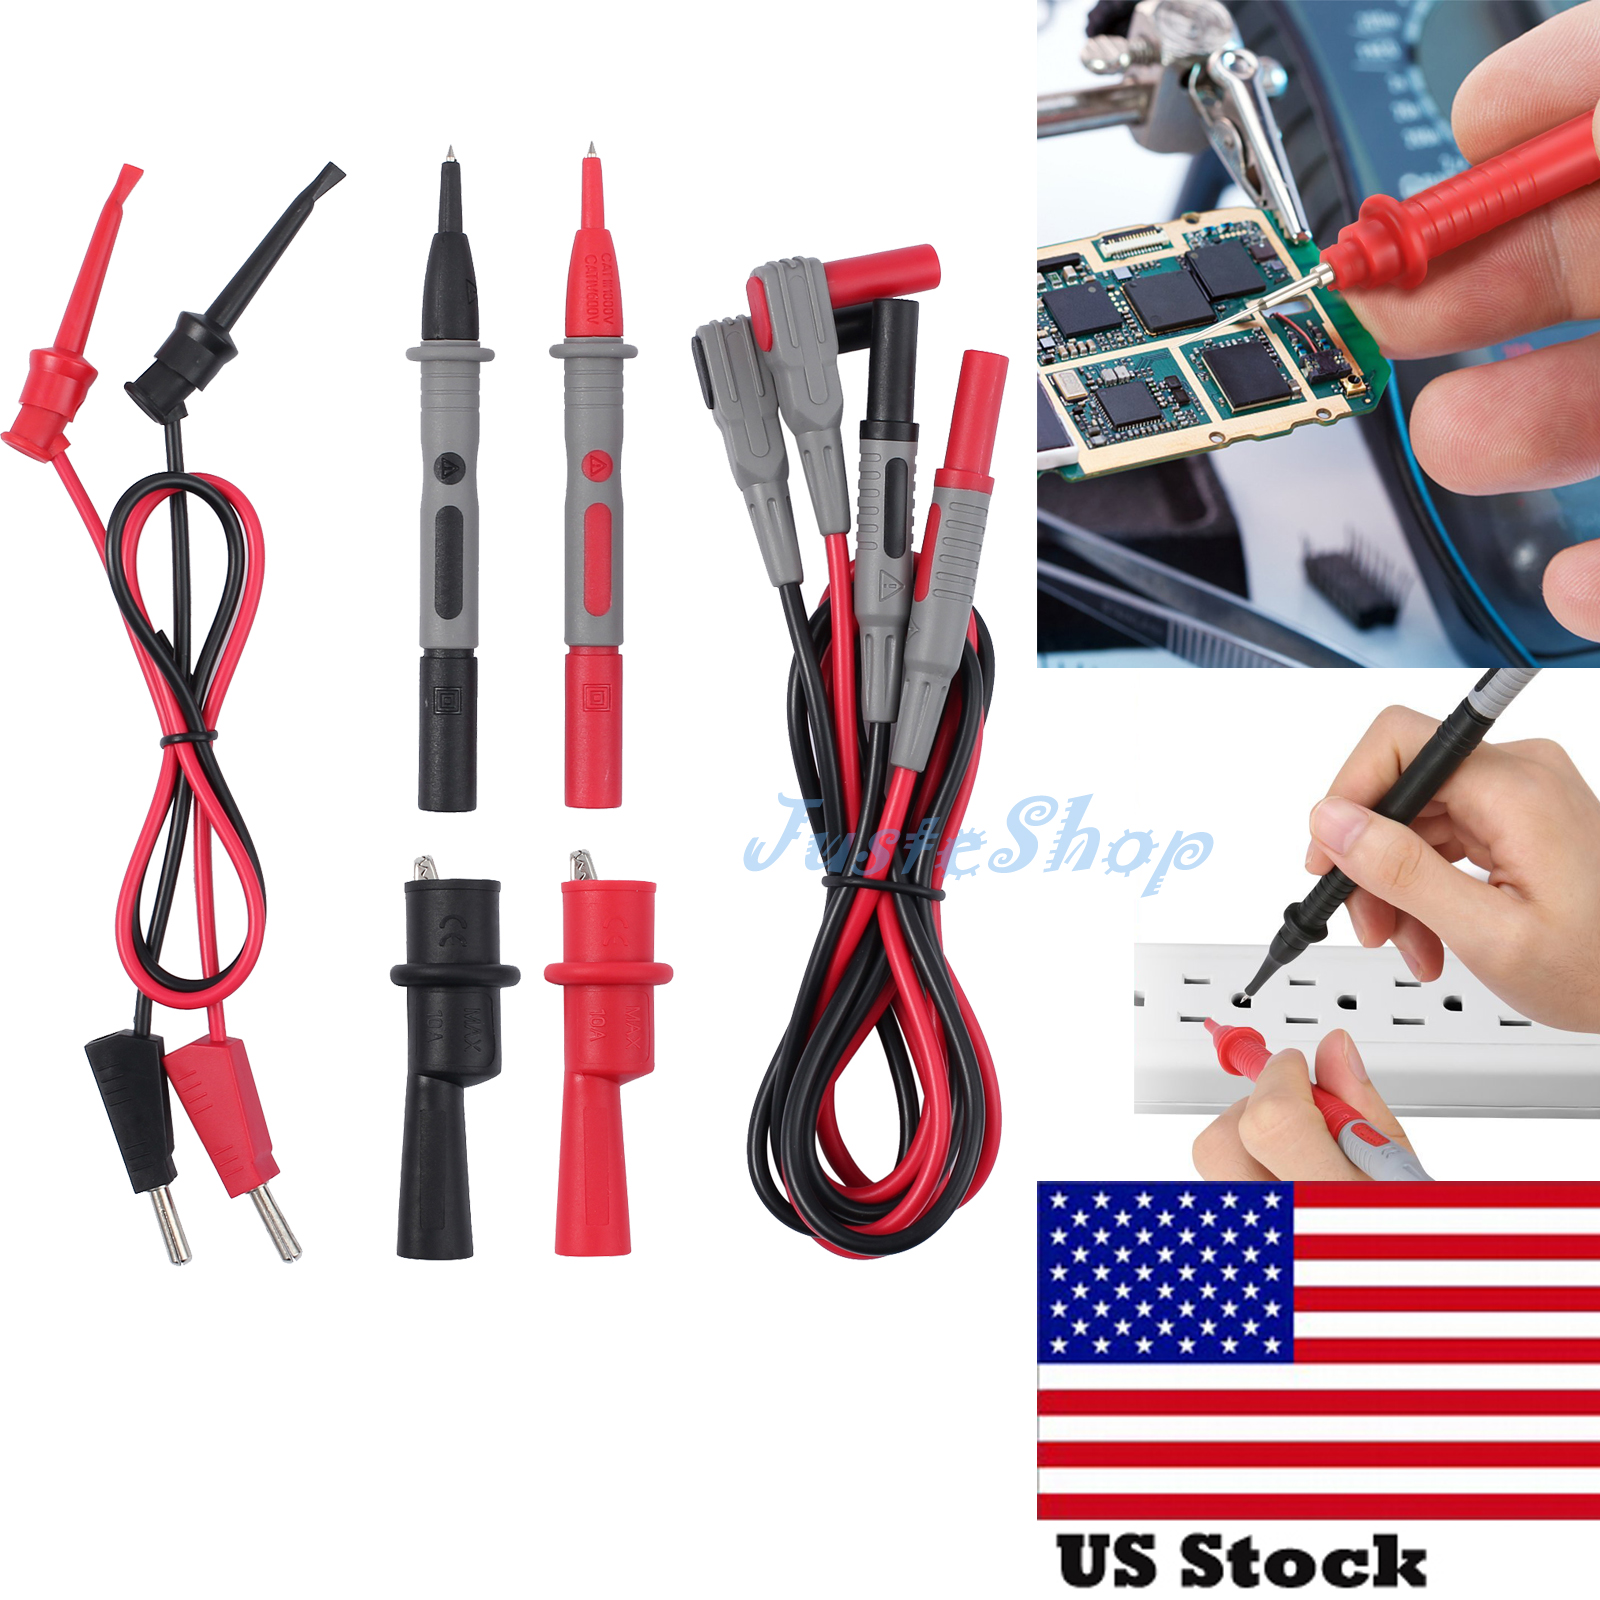 Digital Multimeter Probe Test Leads Crocodile Clips Tester Cable Electrical Part